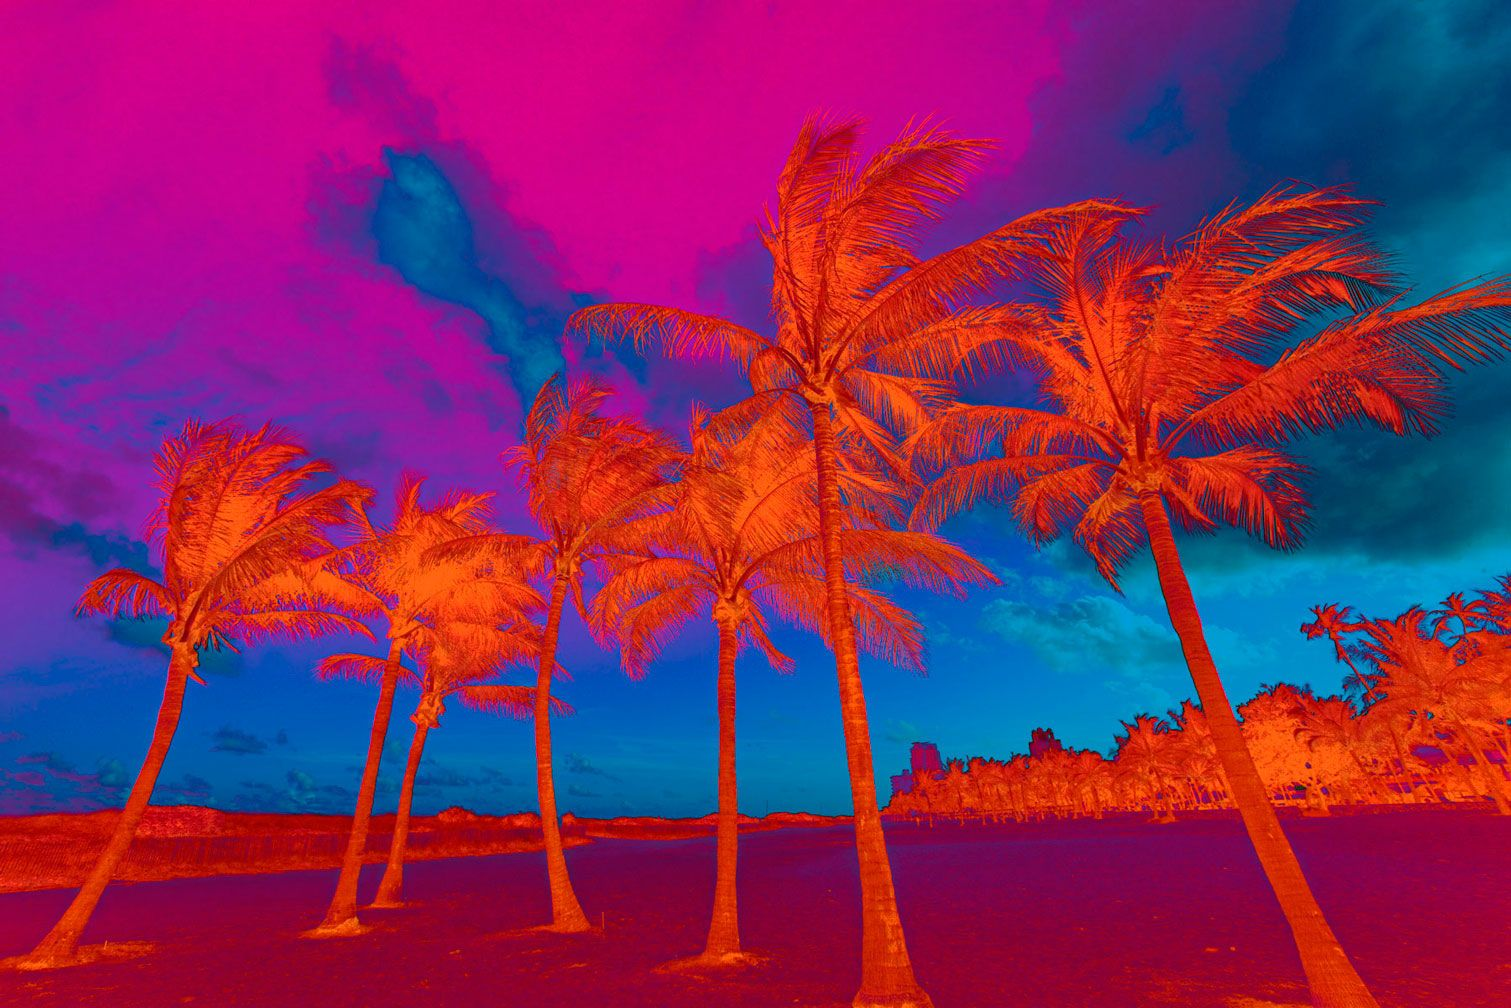 Horizontal Psychedelic Palm Trees in Orange Blue Pink